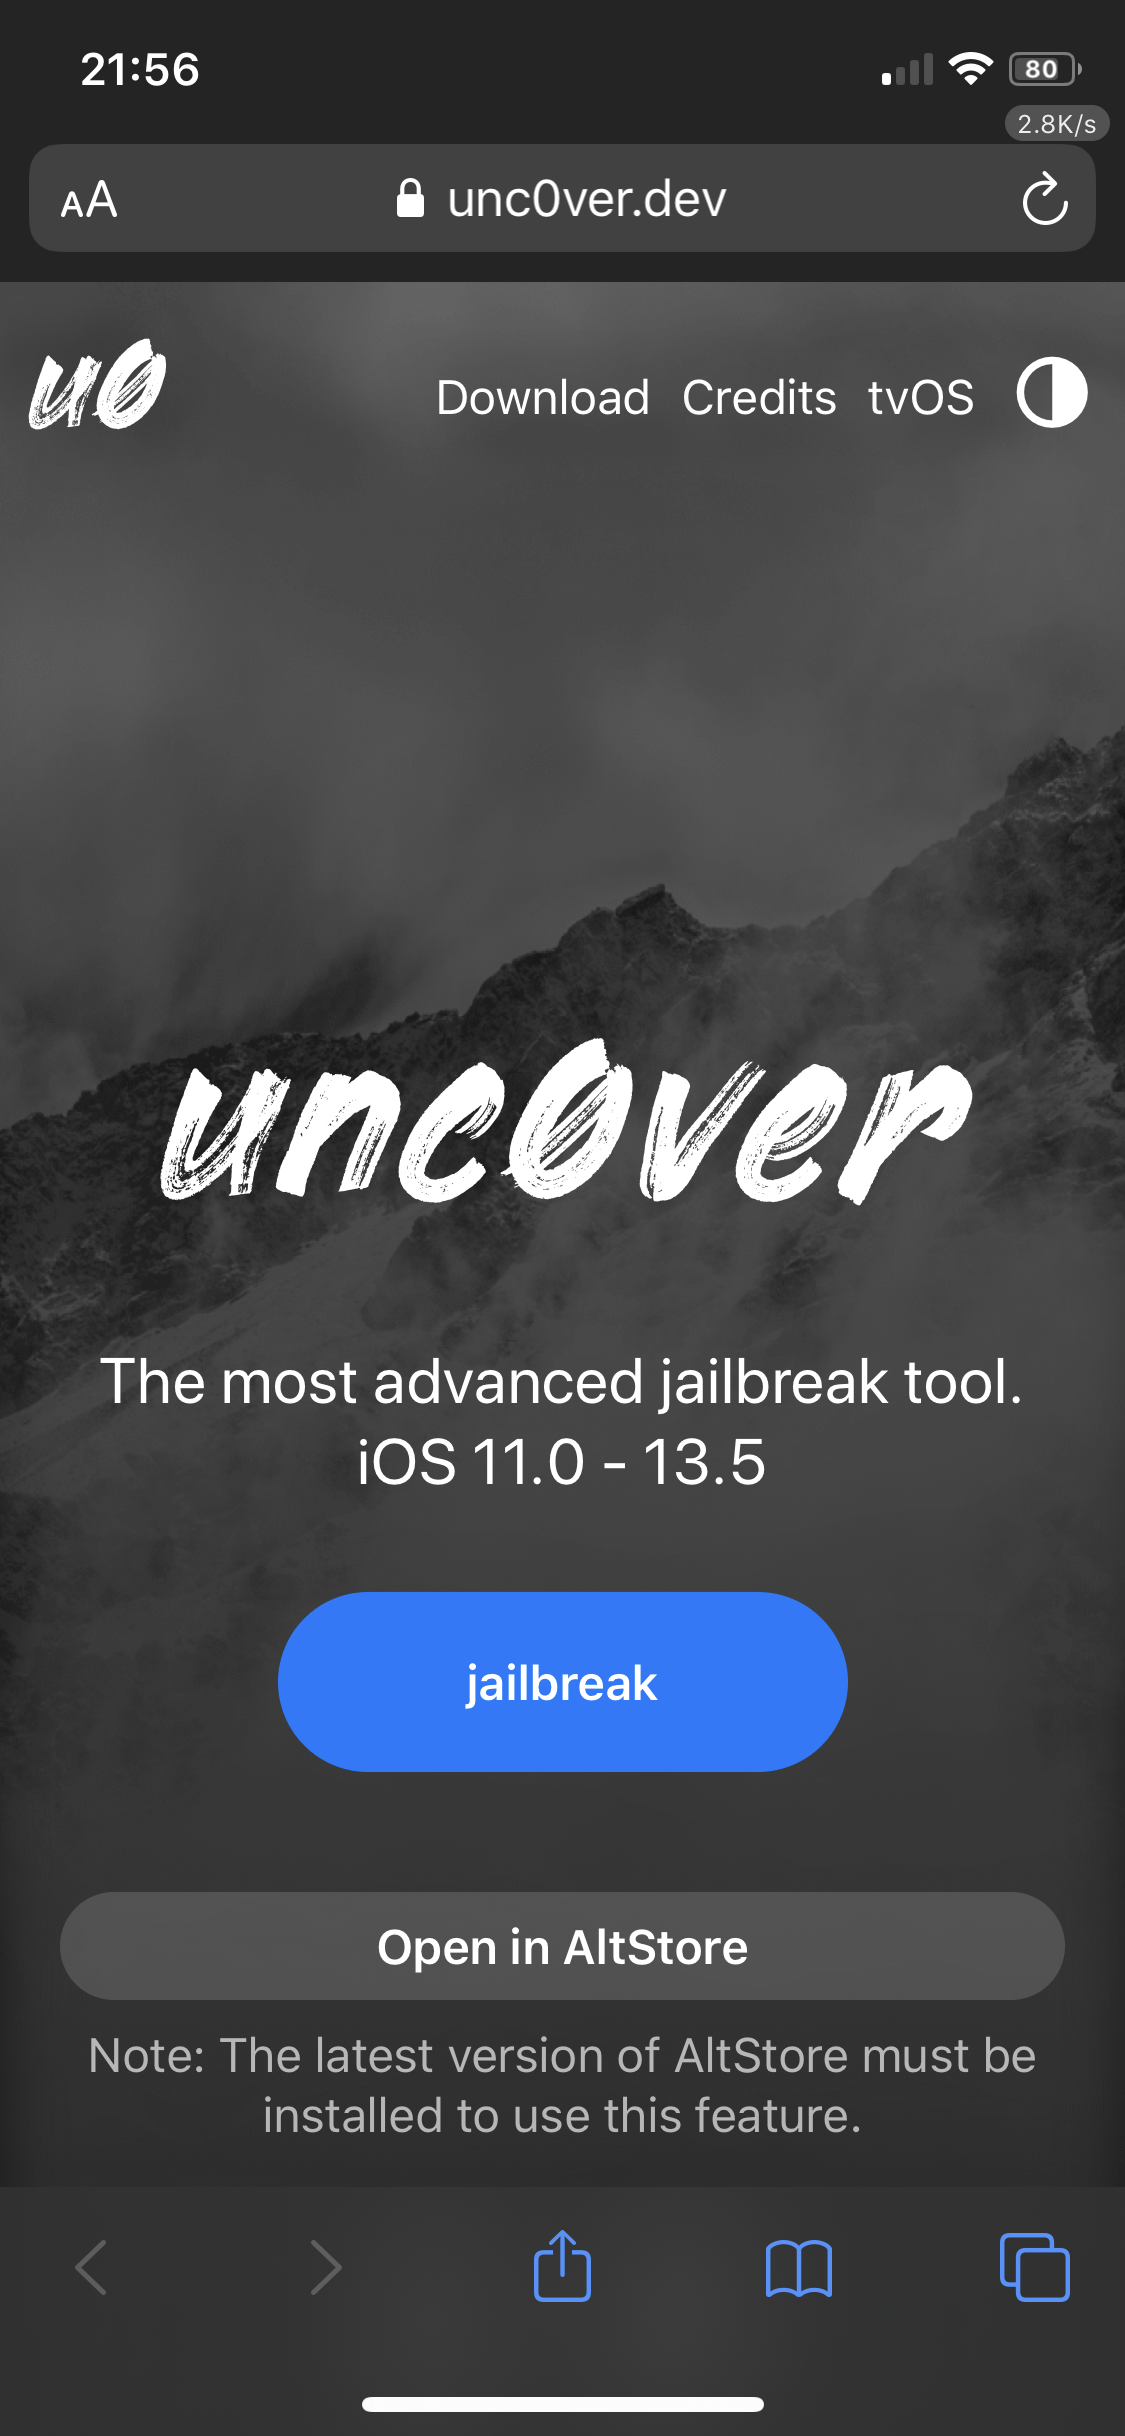 How to jailbreak iOS 13.5 with unc0ver on MacOS-cnTechPost